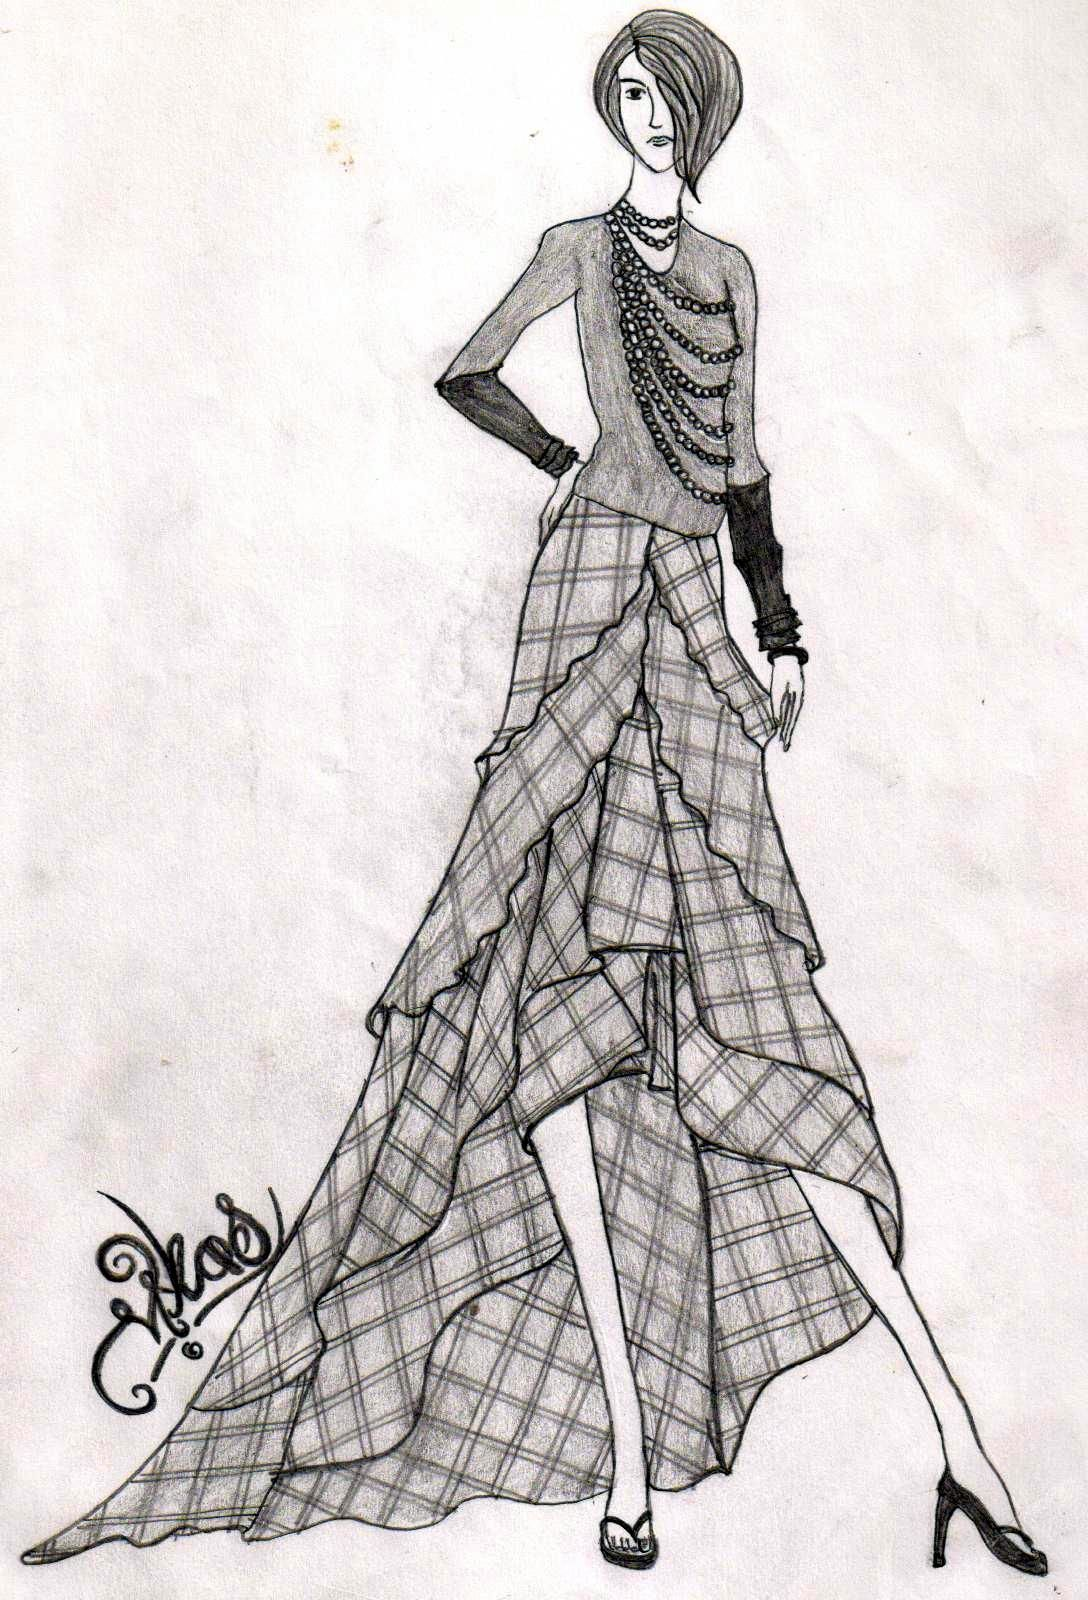 Checkered dress pencil drawings in 2019 pencil drawings drawing